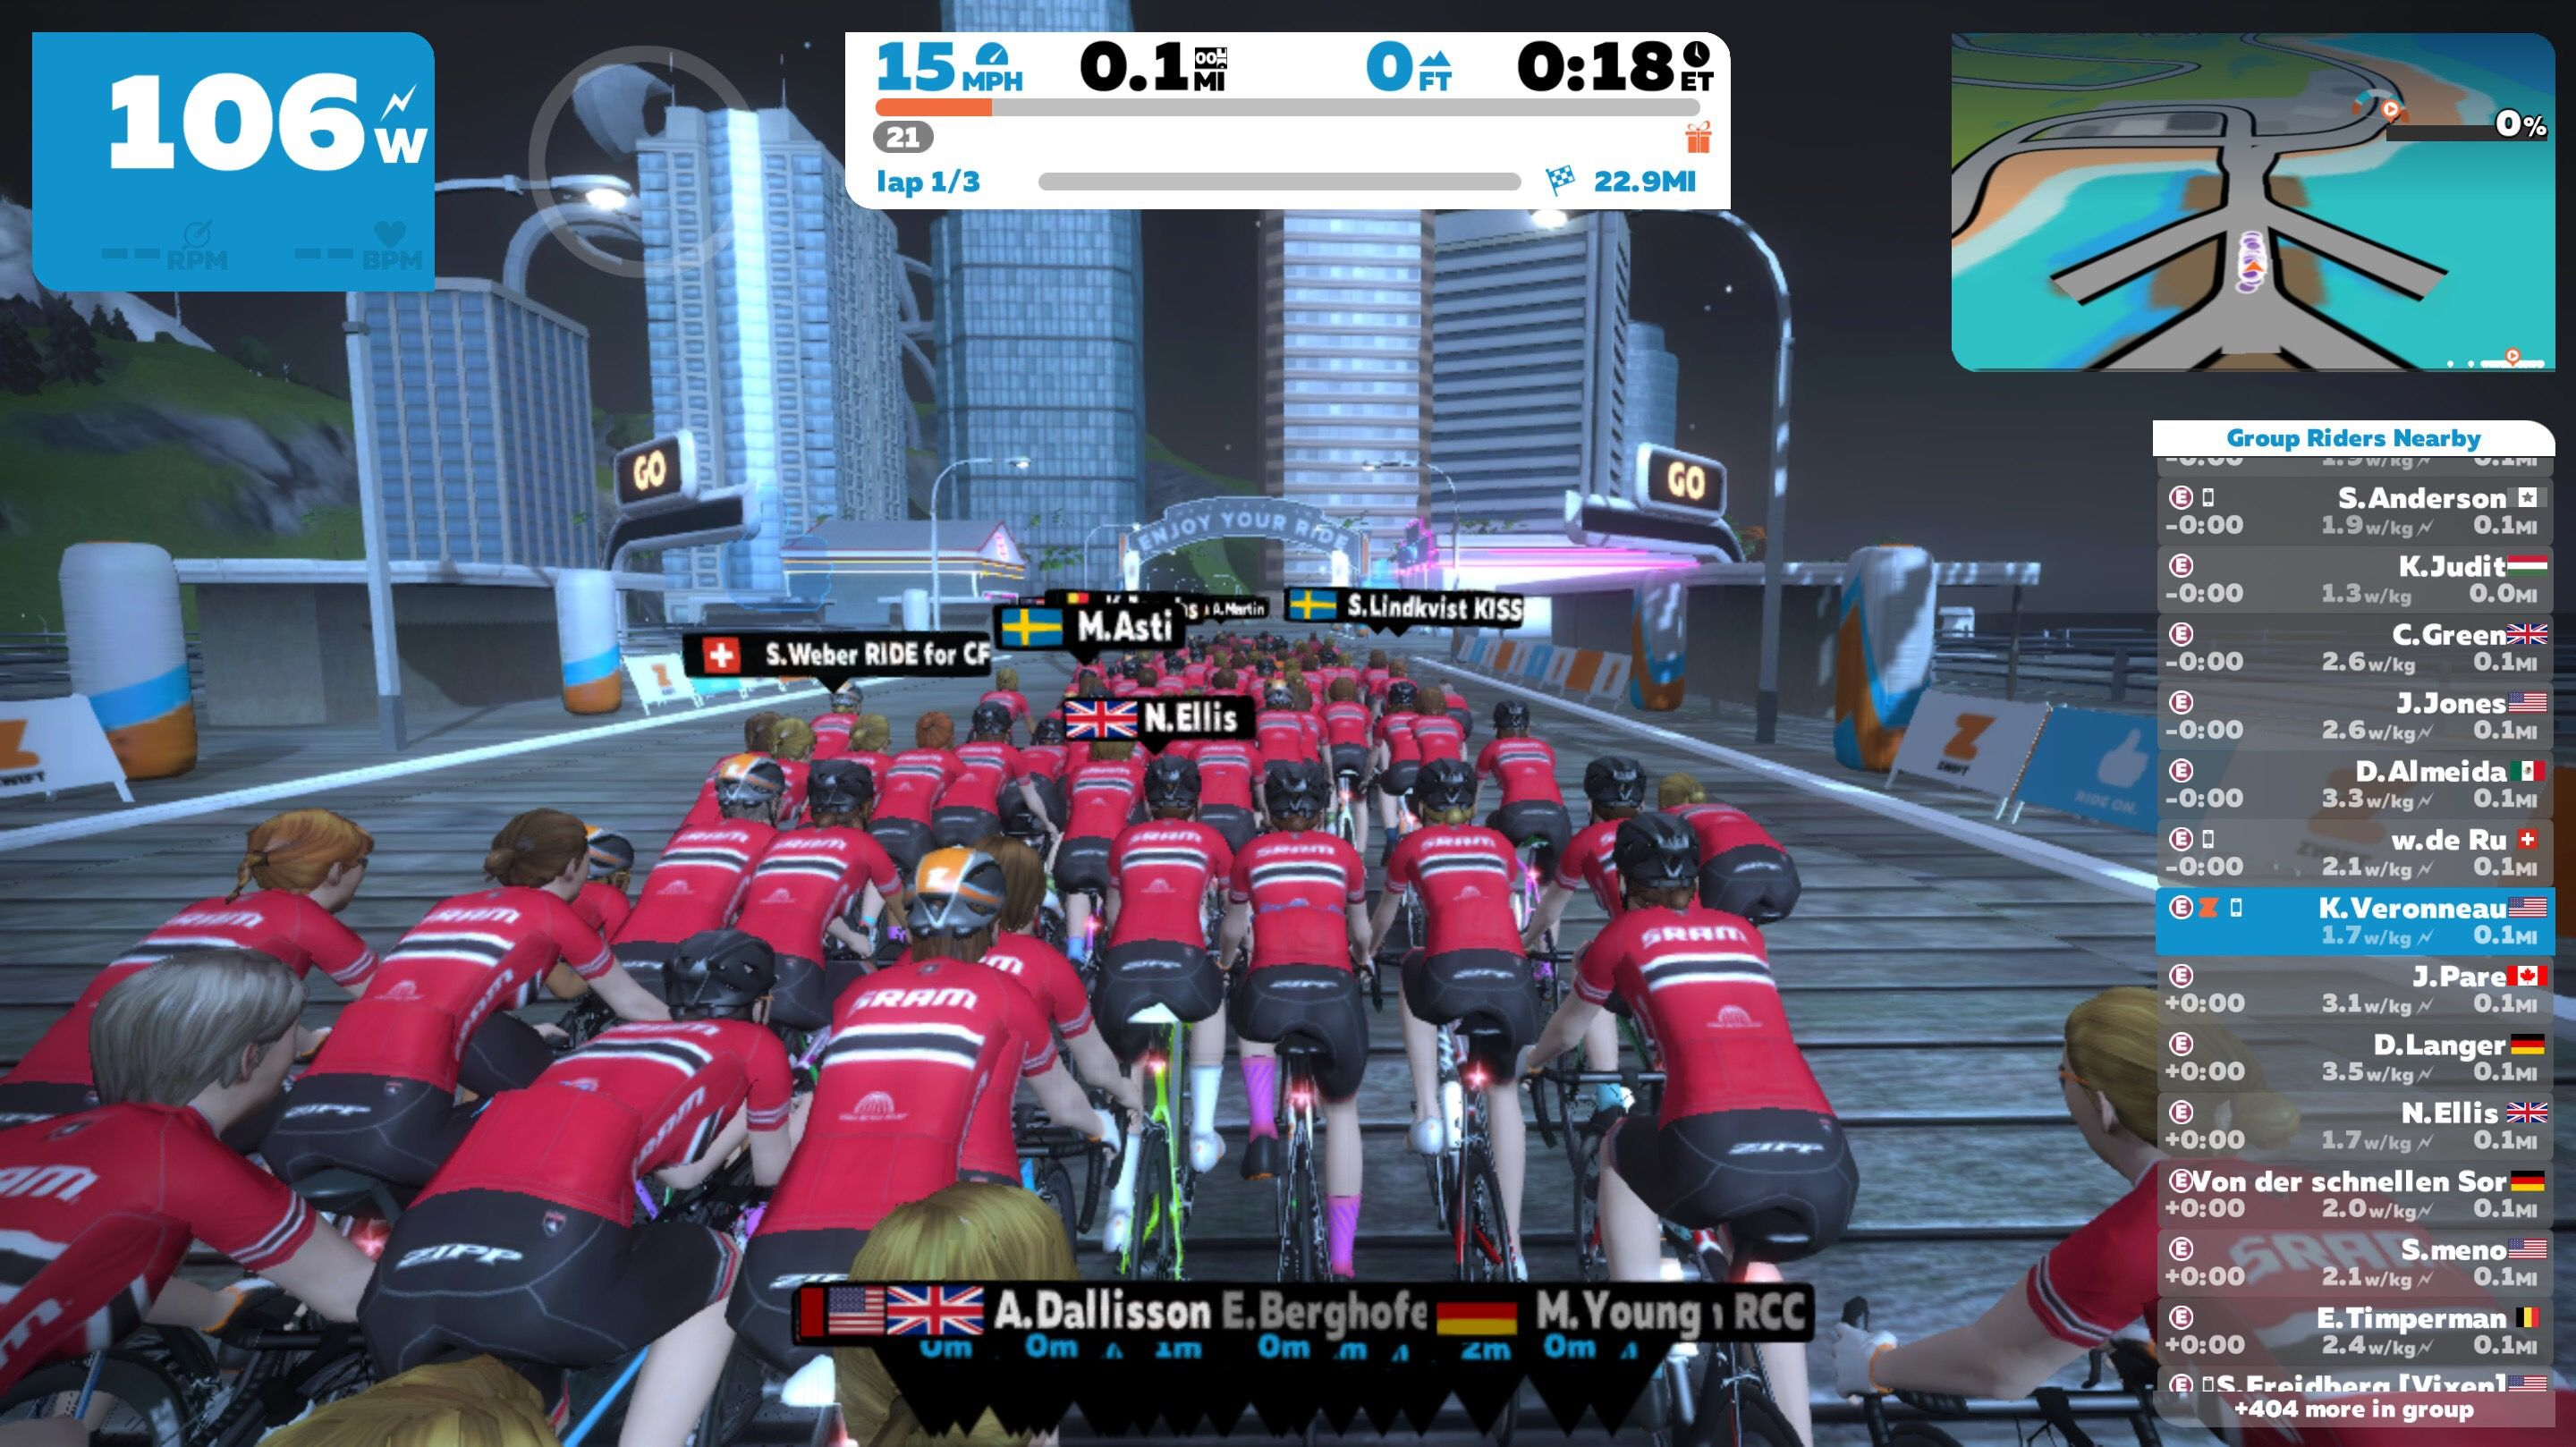 Thinking of Cheating on Zwift? These People Are on to You